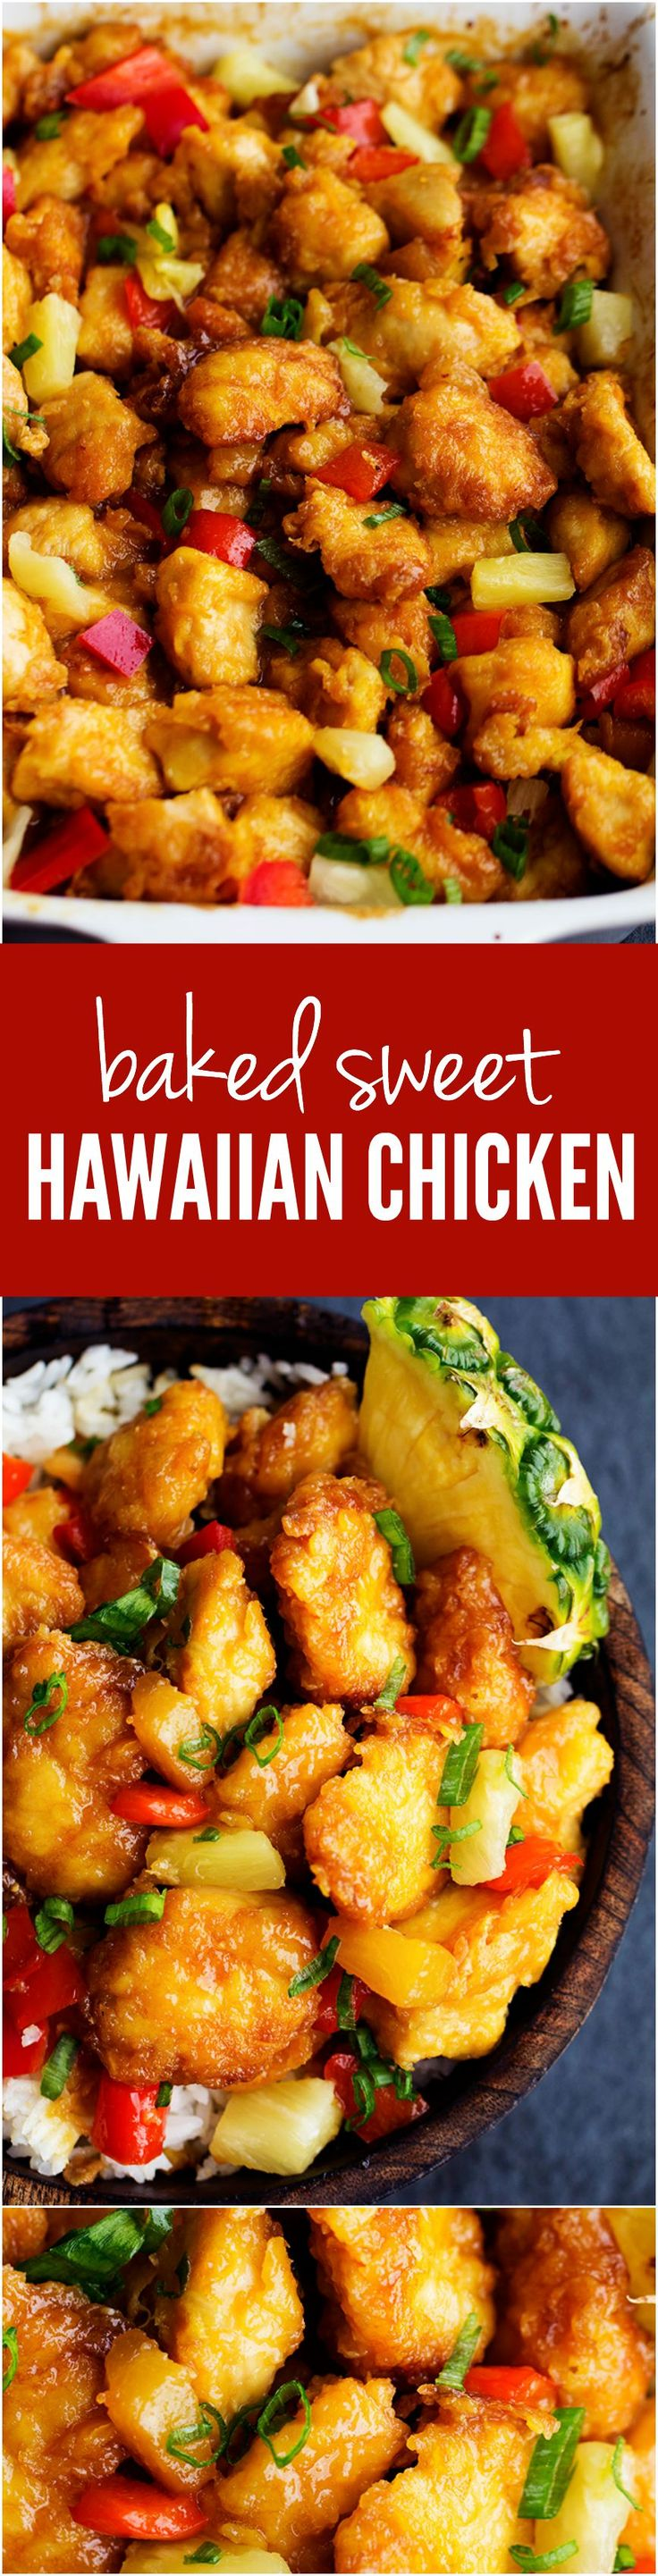 baked sweet hawaiian chicken hawaiian dishes hawaiian chicken hawaiian ...